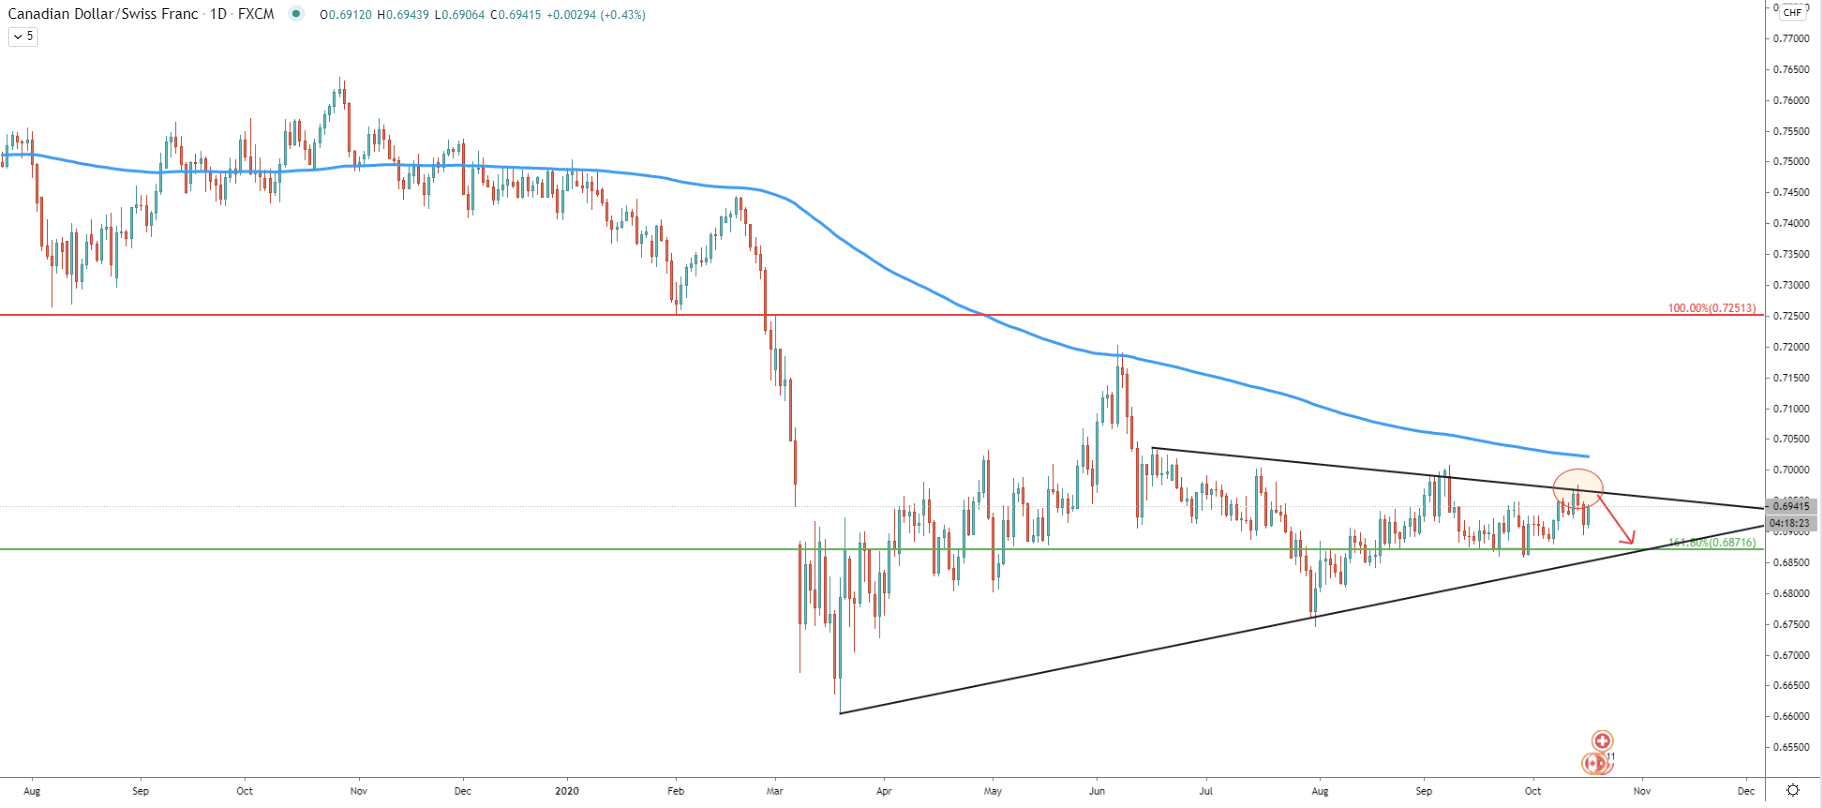 CAD/CHF Daily Technical Analysis 16 Oct 2020